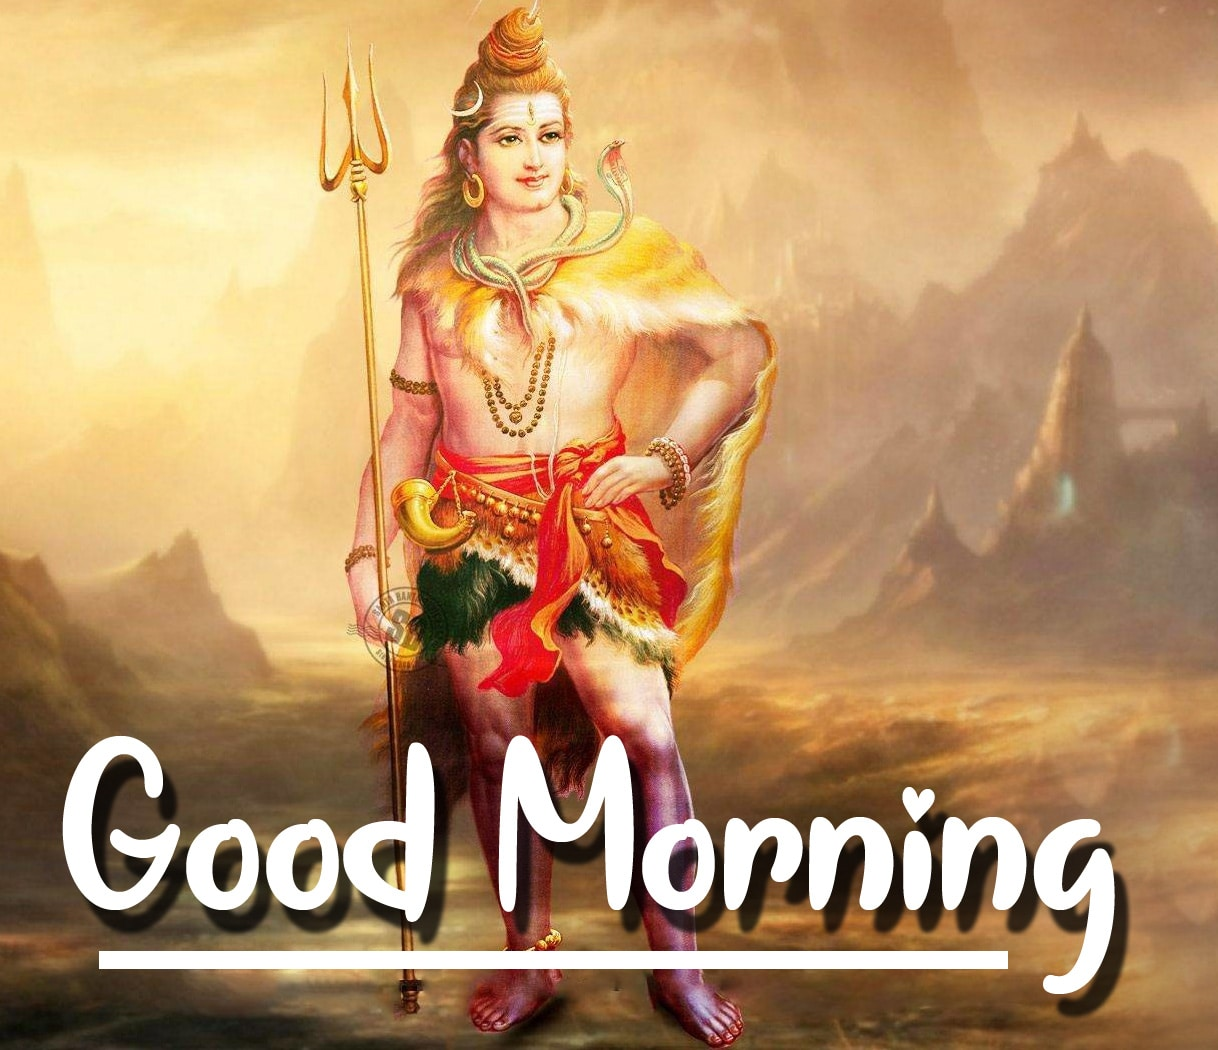 Shiva Good Mornign Wallpaper 22